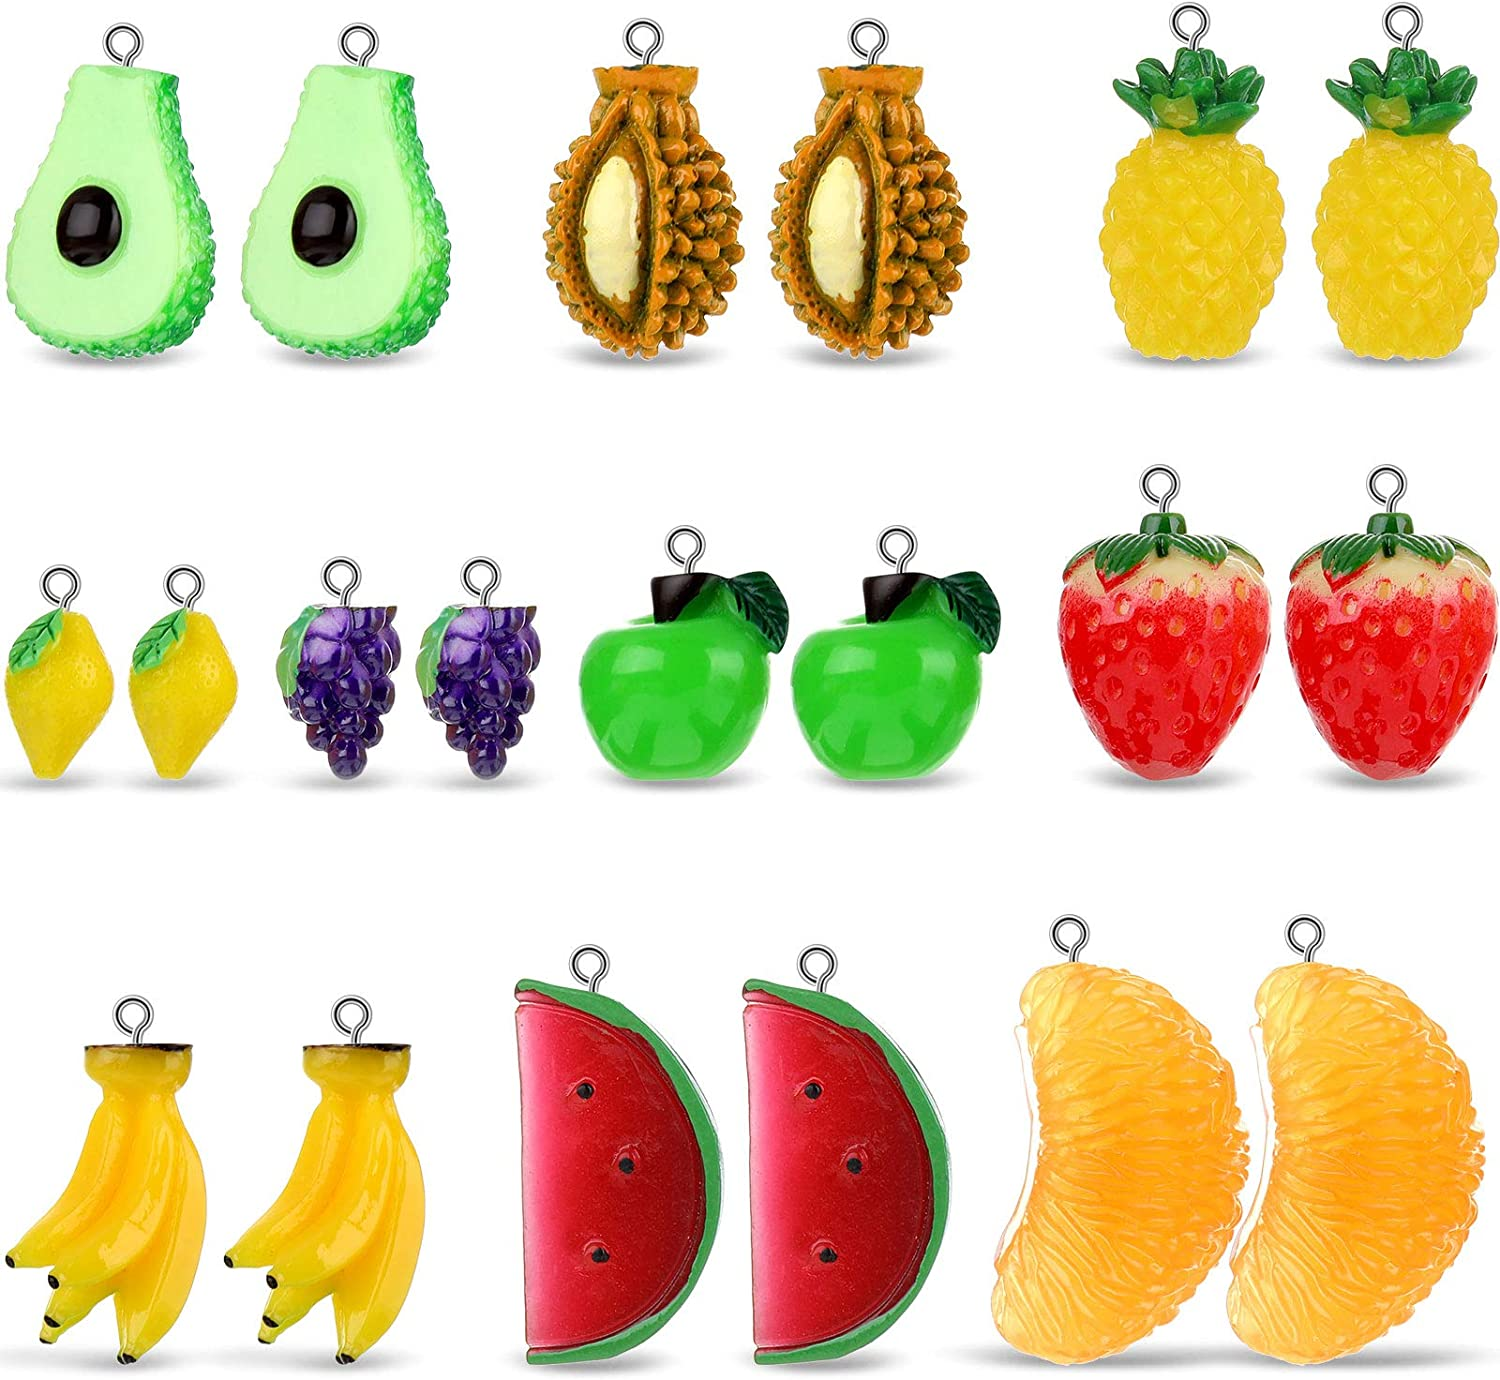 20 Pieces Fruit Pendants Charms 3D Imitation Food Fruit Pendants Resin Charms Strawberry Orange Banana Grape Charms Beads Hanging Ornament for Jewelry Making